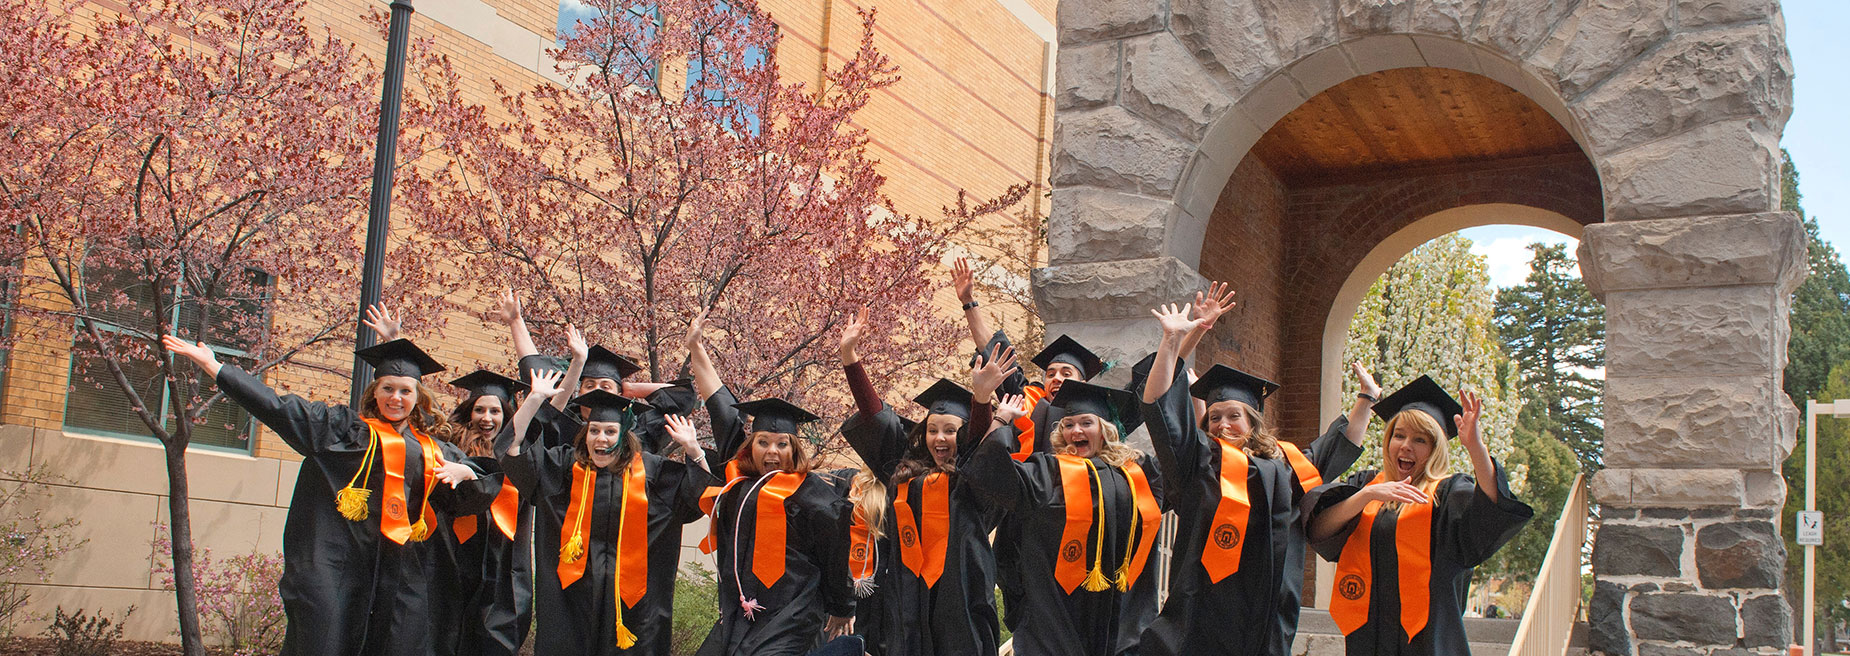 Graduates cheering at Swanson Arch